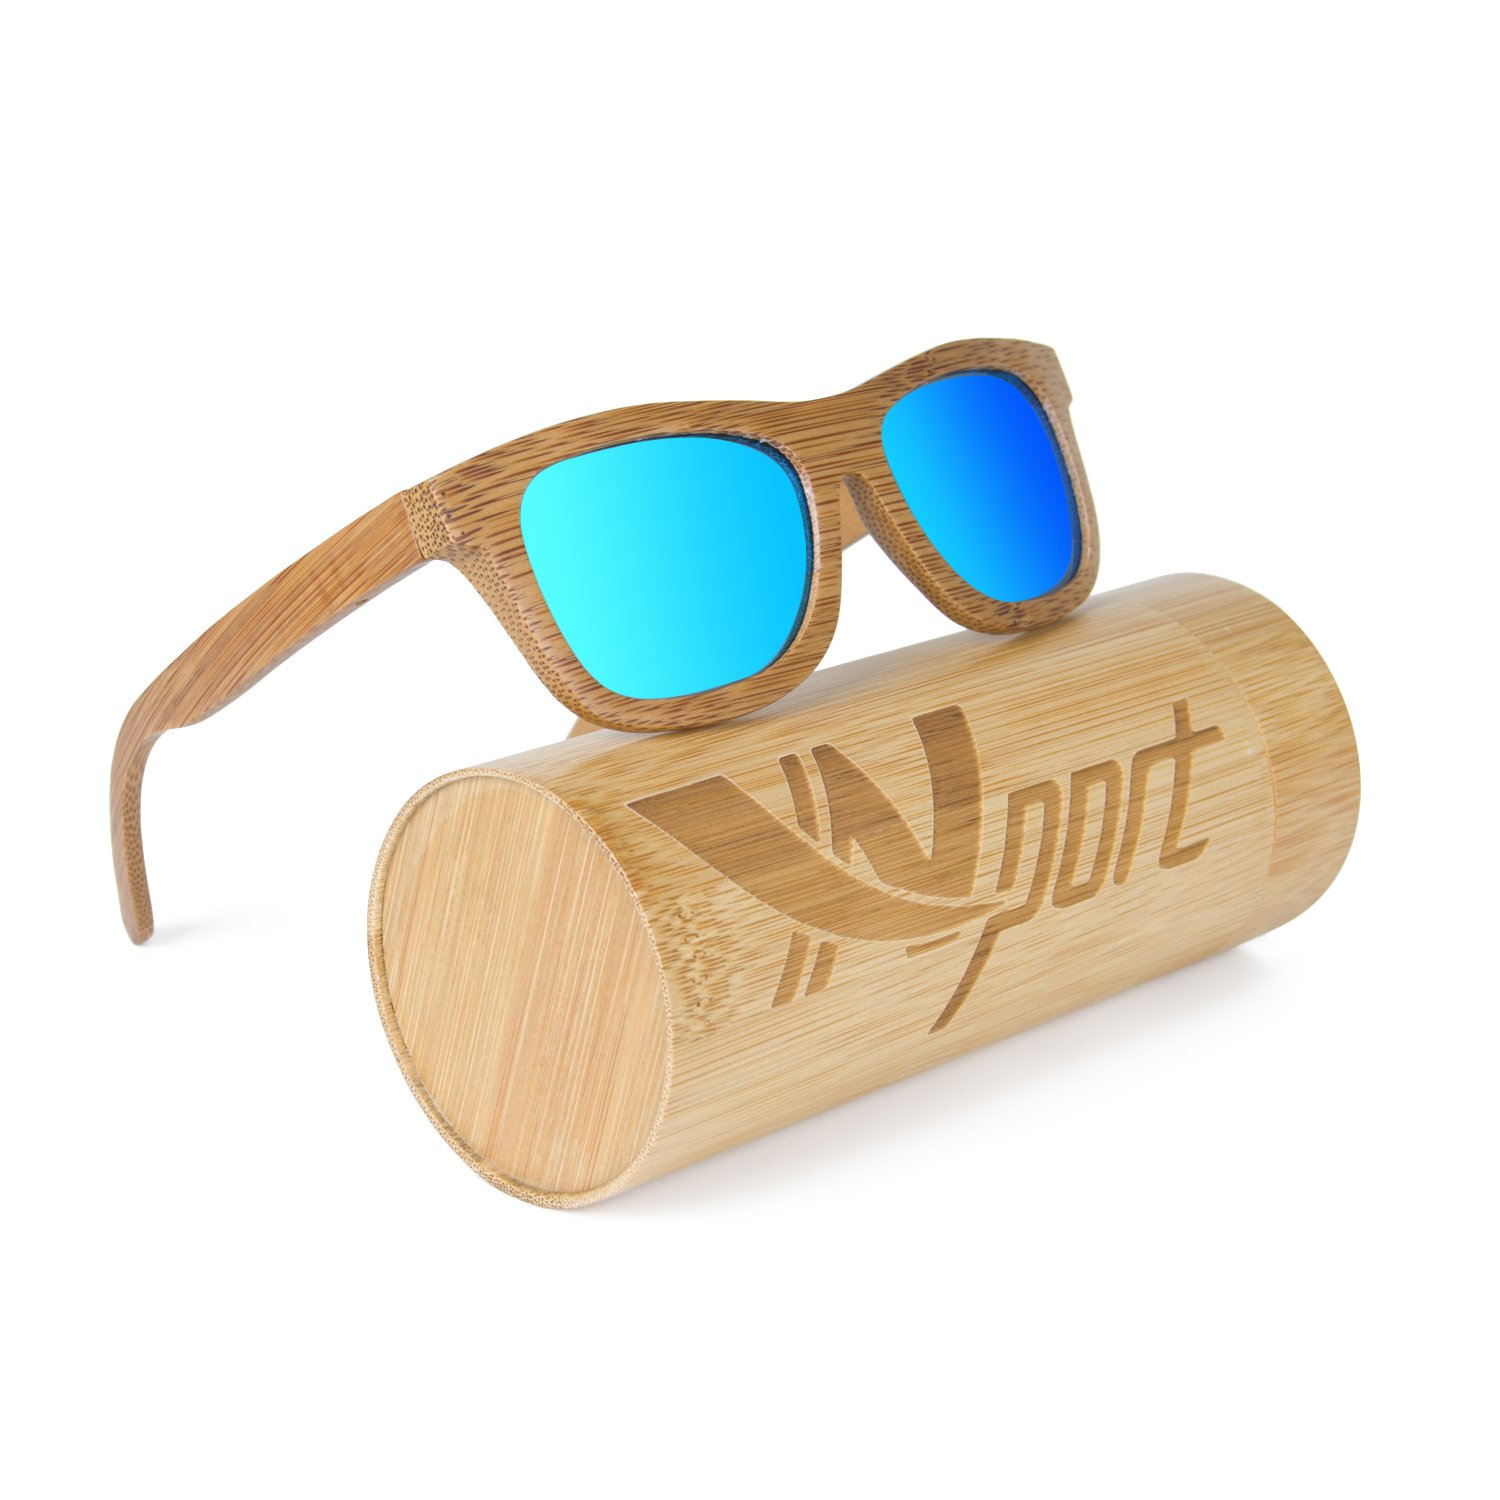 7662637a5c Amazon.com   Ynport Mens Womens Polarized Full Charcoal Bamboo Frame  Classic Wooden Coated Sunglasses